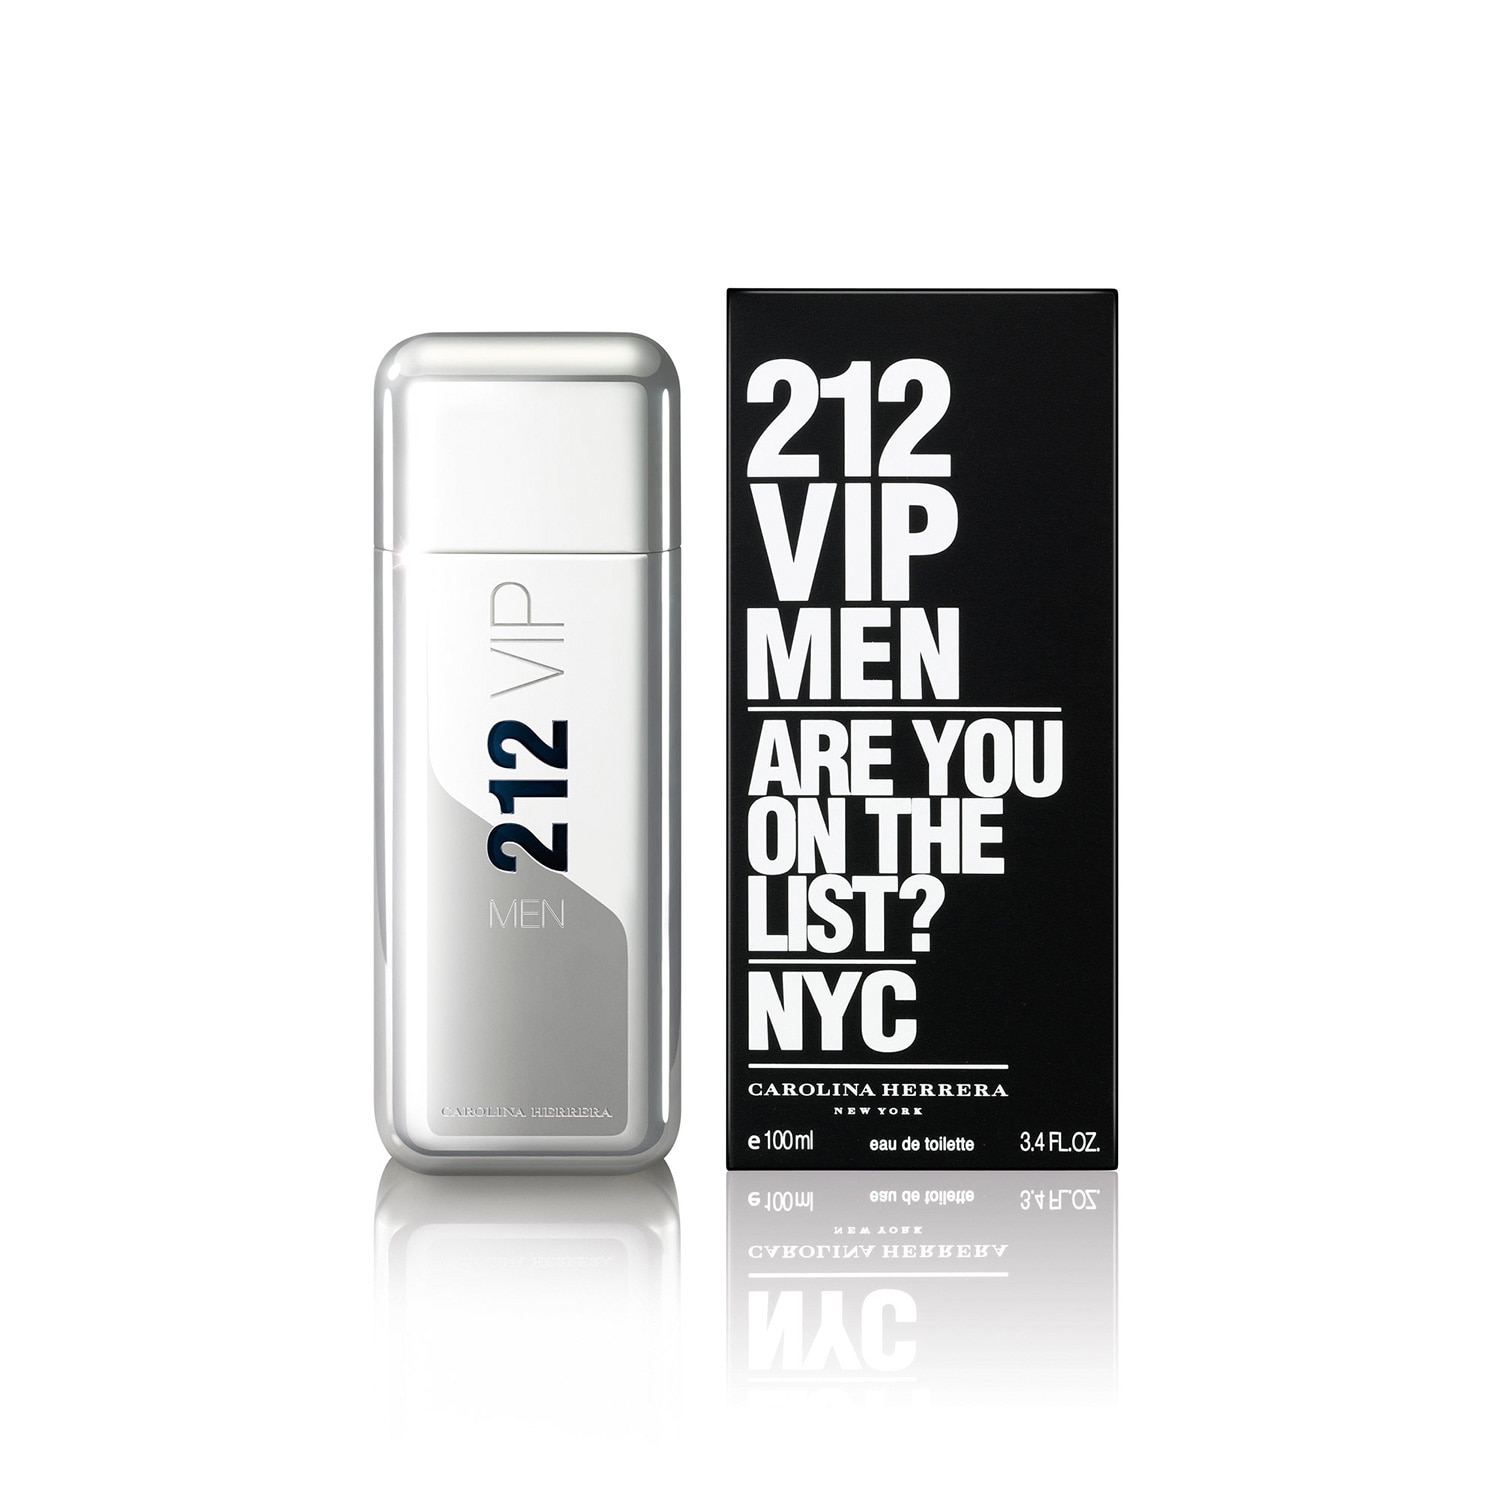 FRAGANCIA PARA CABALLERO, CAROLINA HERRERA, 212 VIP MEN, EAU DE TOILETTE, 100 ML